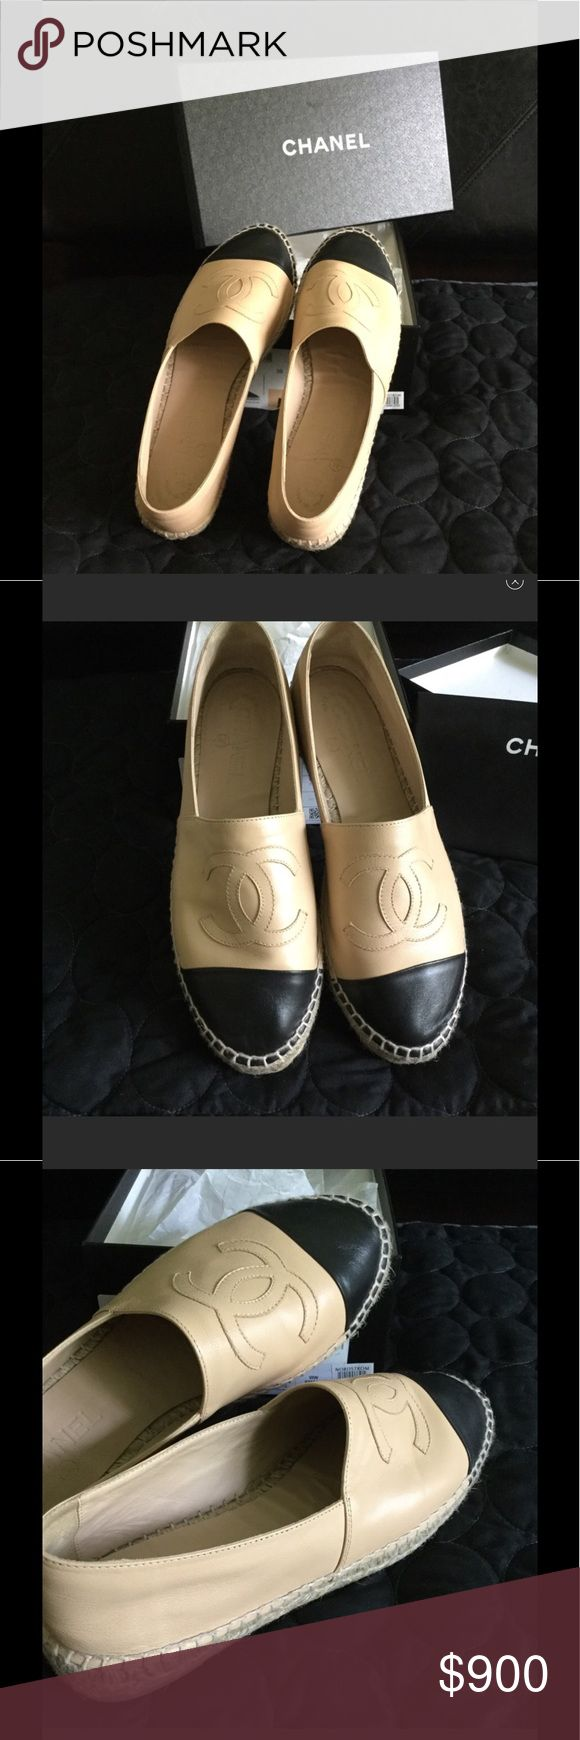 💯% AUTHENTIC CHANEL ESPADRILLES BEIGE/BLACK SOLD OUT in Boutiques▪️Lambskin Beige/Black Chanel Espadrilles ▪️ Size 39 ▪️ worn once mostly indoor▪️Know your size. Runs Small. I wear a size 8 and it fits me▪️◾Comes with box and dust bag◾Firm on price ▪️🚫NO TRADES🚫 ▪️SERIOUS BUYER ONLY▪️ITEM IS FROM A SMOKE FREE AND PET FREE HOME CHANEL Shoes